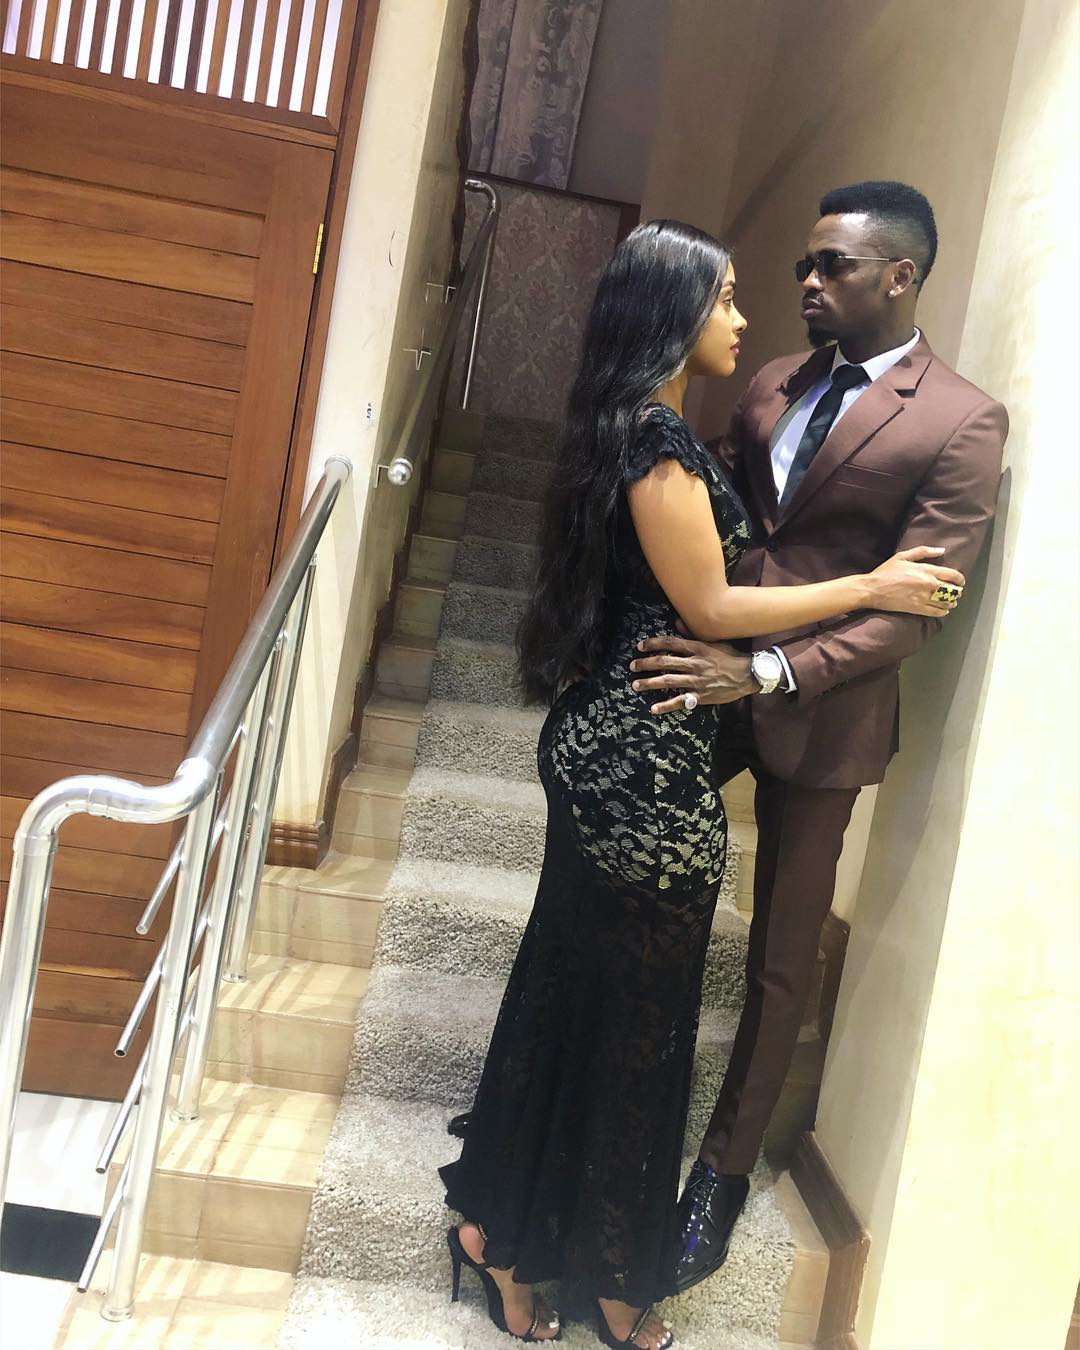 50081082 256432551922759 754931238666905125 n - Will Tanasha be able to keep Diamond Platnumz from cheating? (opinion)